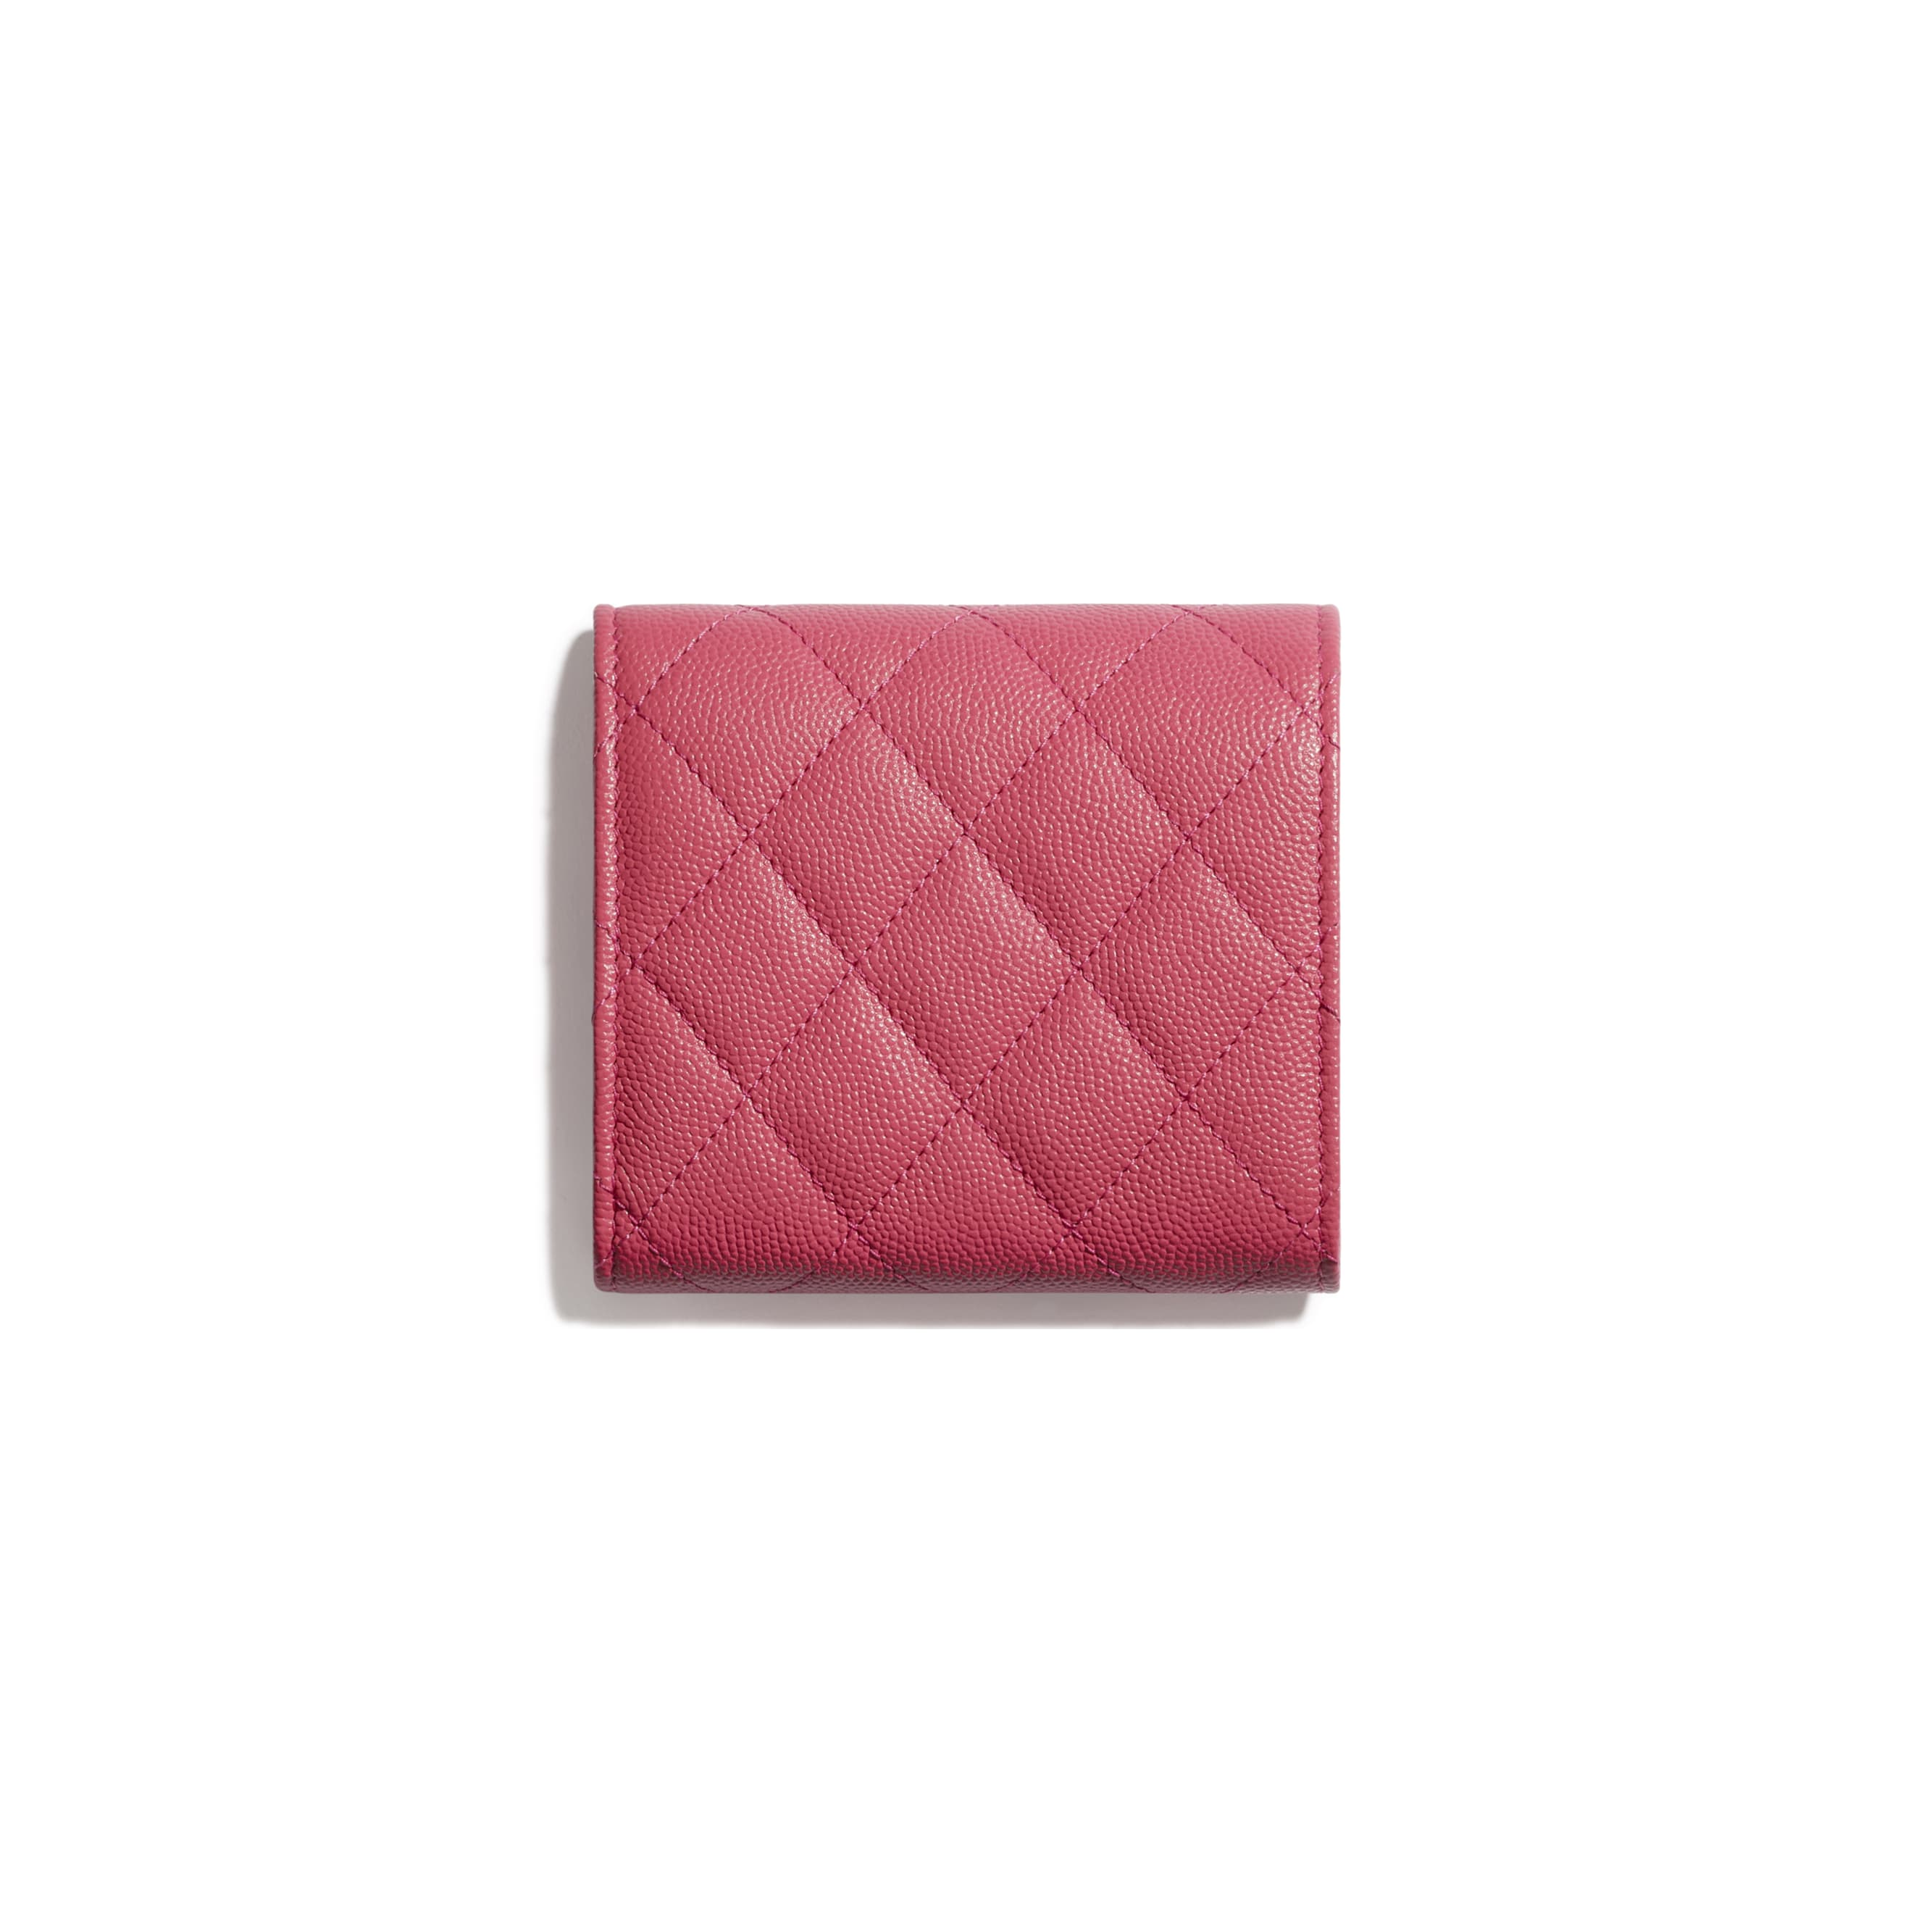 Small Flap Wallet - Pink - Grained Calfskin & Gold-Tone Metal - CHANEL - Alternative view - see standard sized version